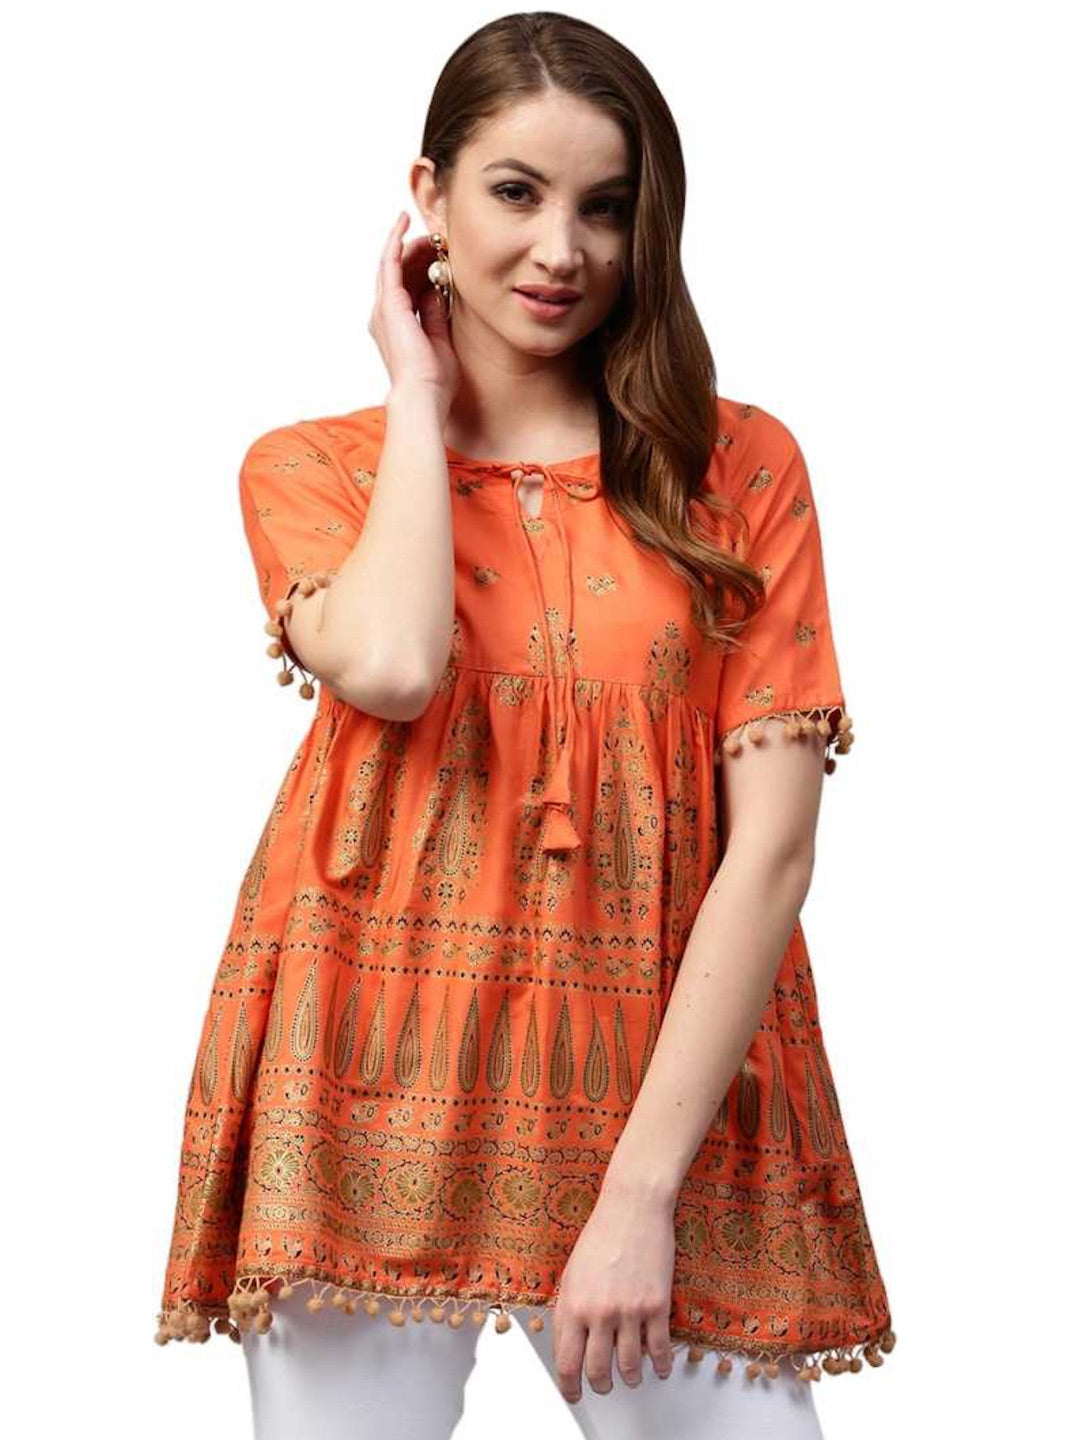 [Available] Orange Ethnic Top with Dangling Lace Details - Last 2 pieces